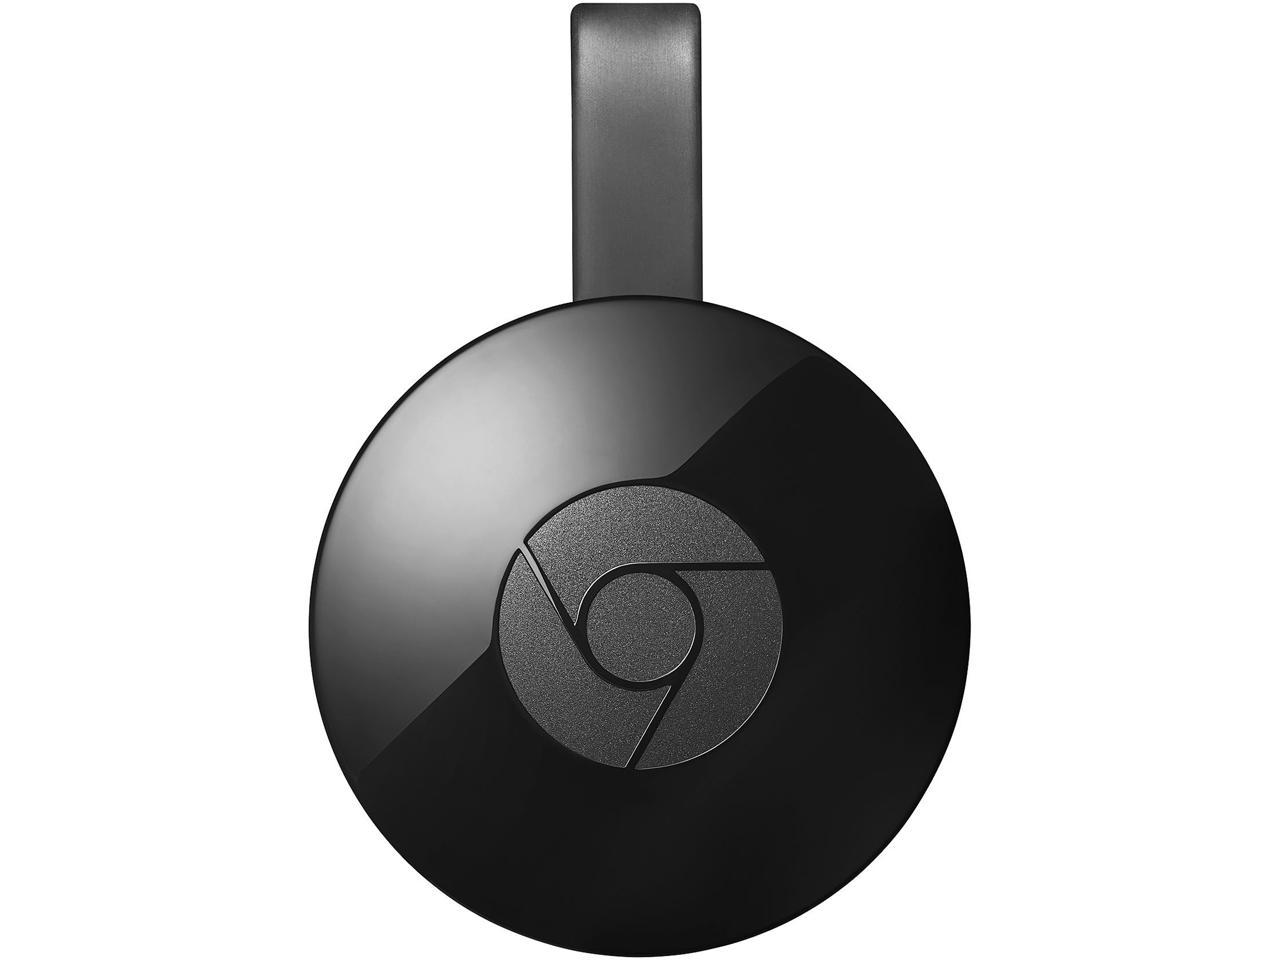 Google Chromecast Streaming Media Player (2nd Gen) GA3A00093-A14-Z01